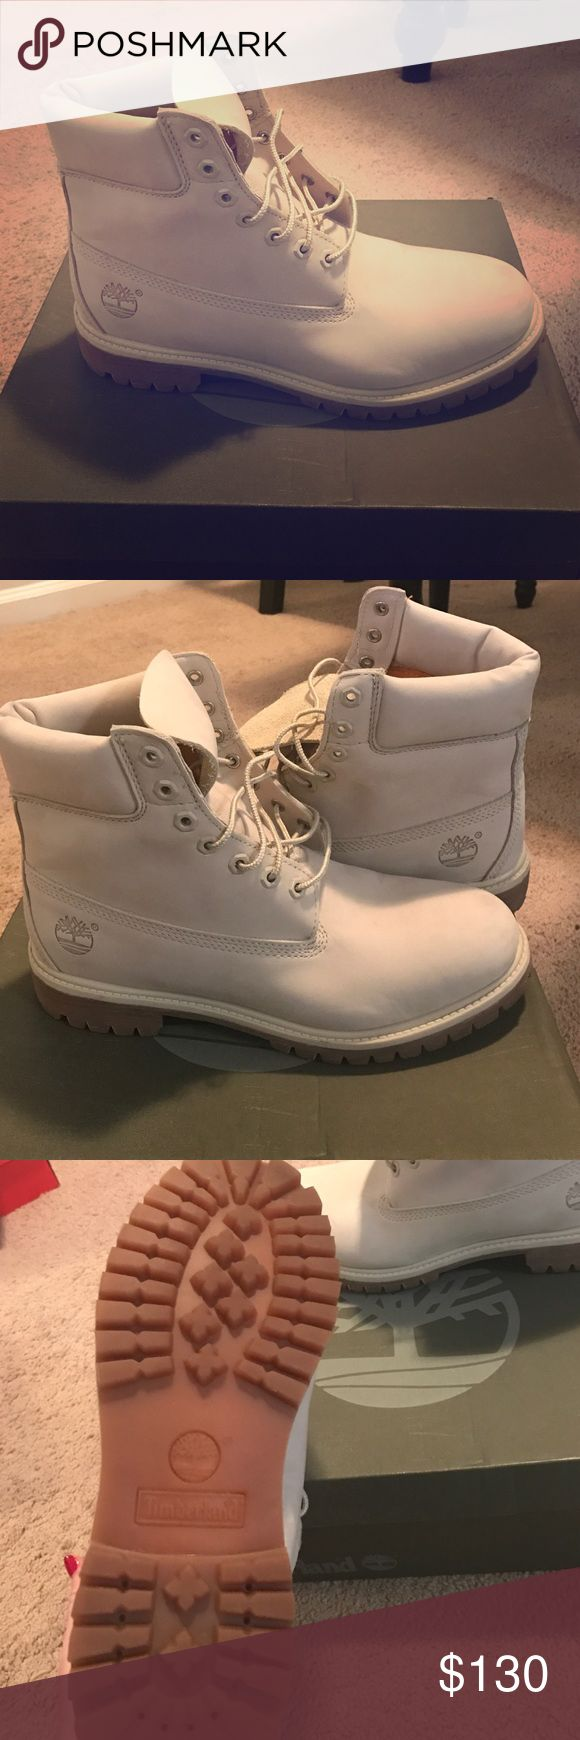 Men's timberland boots Men's suede off white timberland boots Timberland Shoes Boots